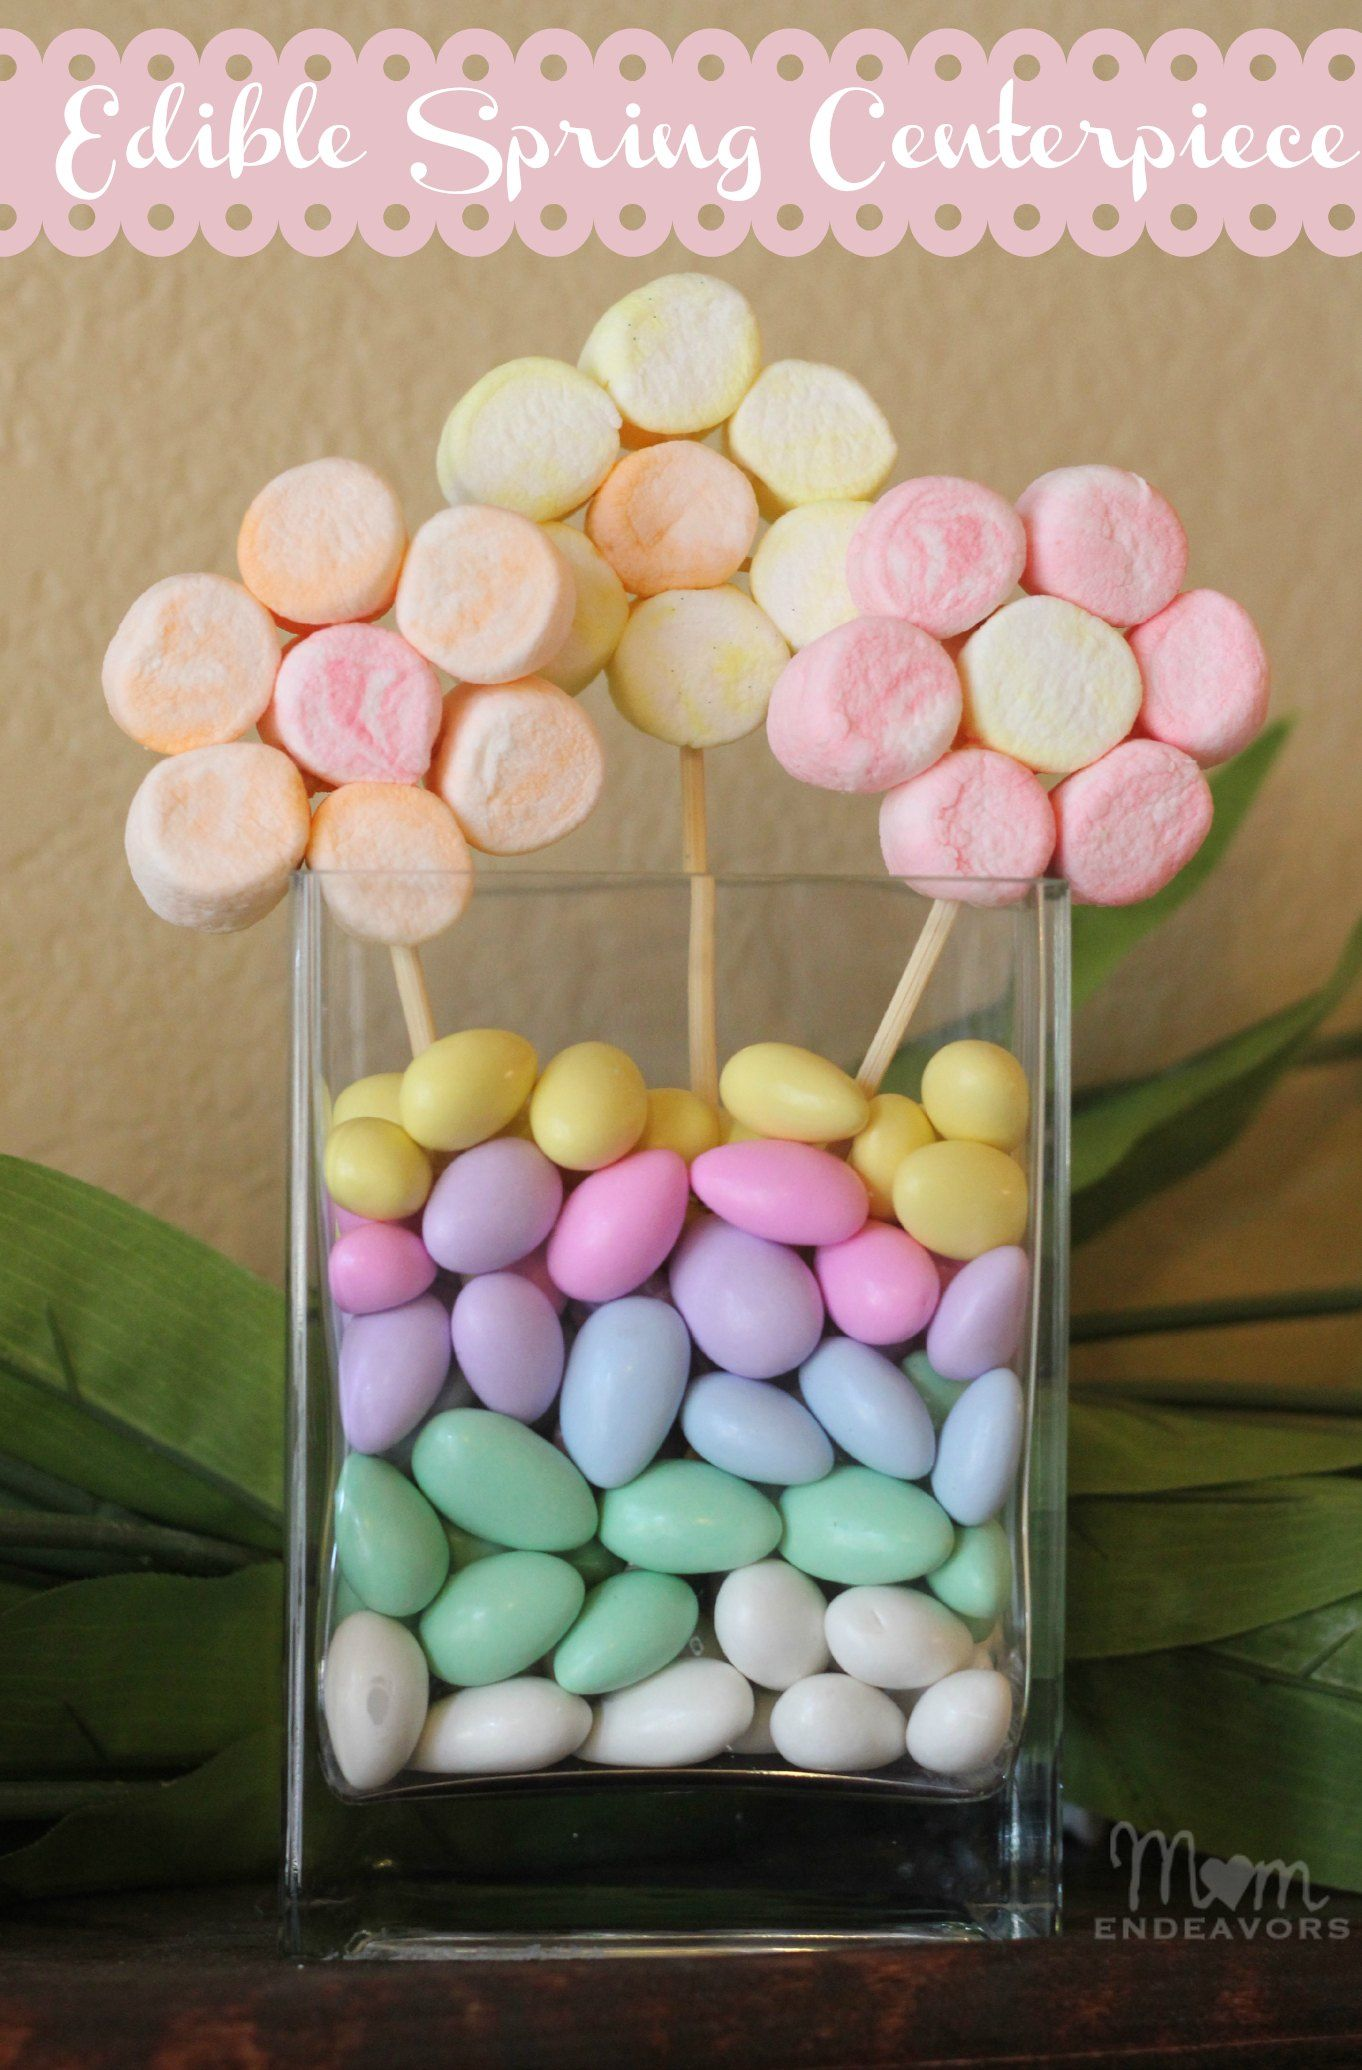 Edible Crafts For Kids To Make Part - 44: Edible Spring Centerpiece With Marshmallow Flowers. Fun For The Kids To Make  And Then Use